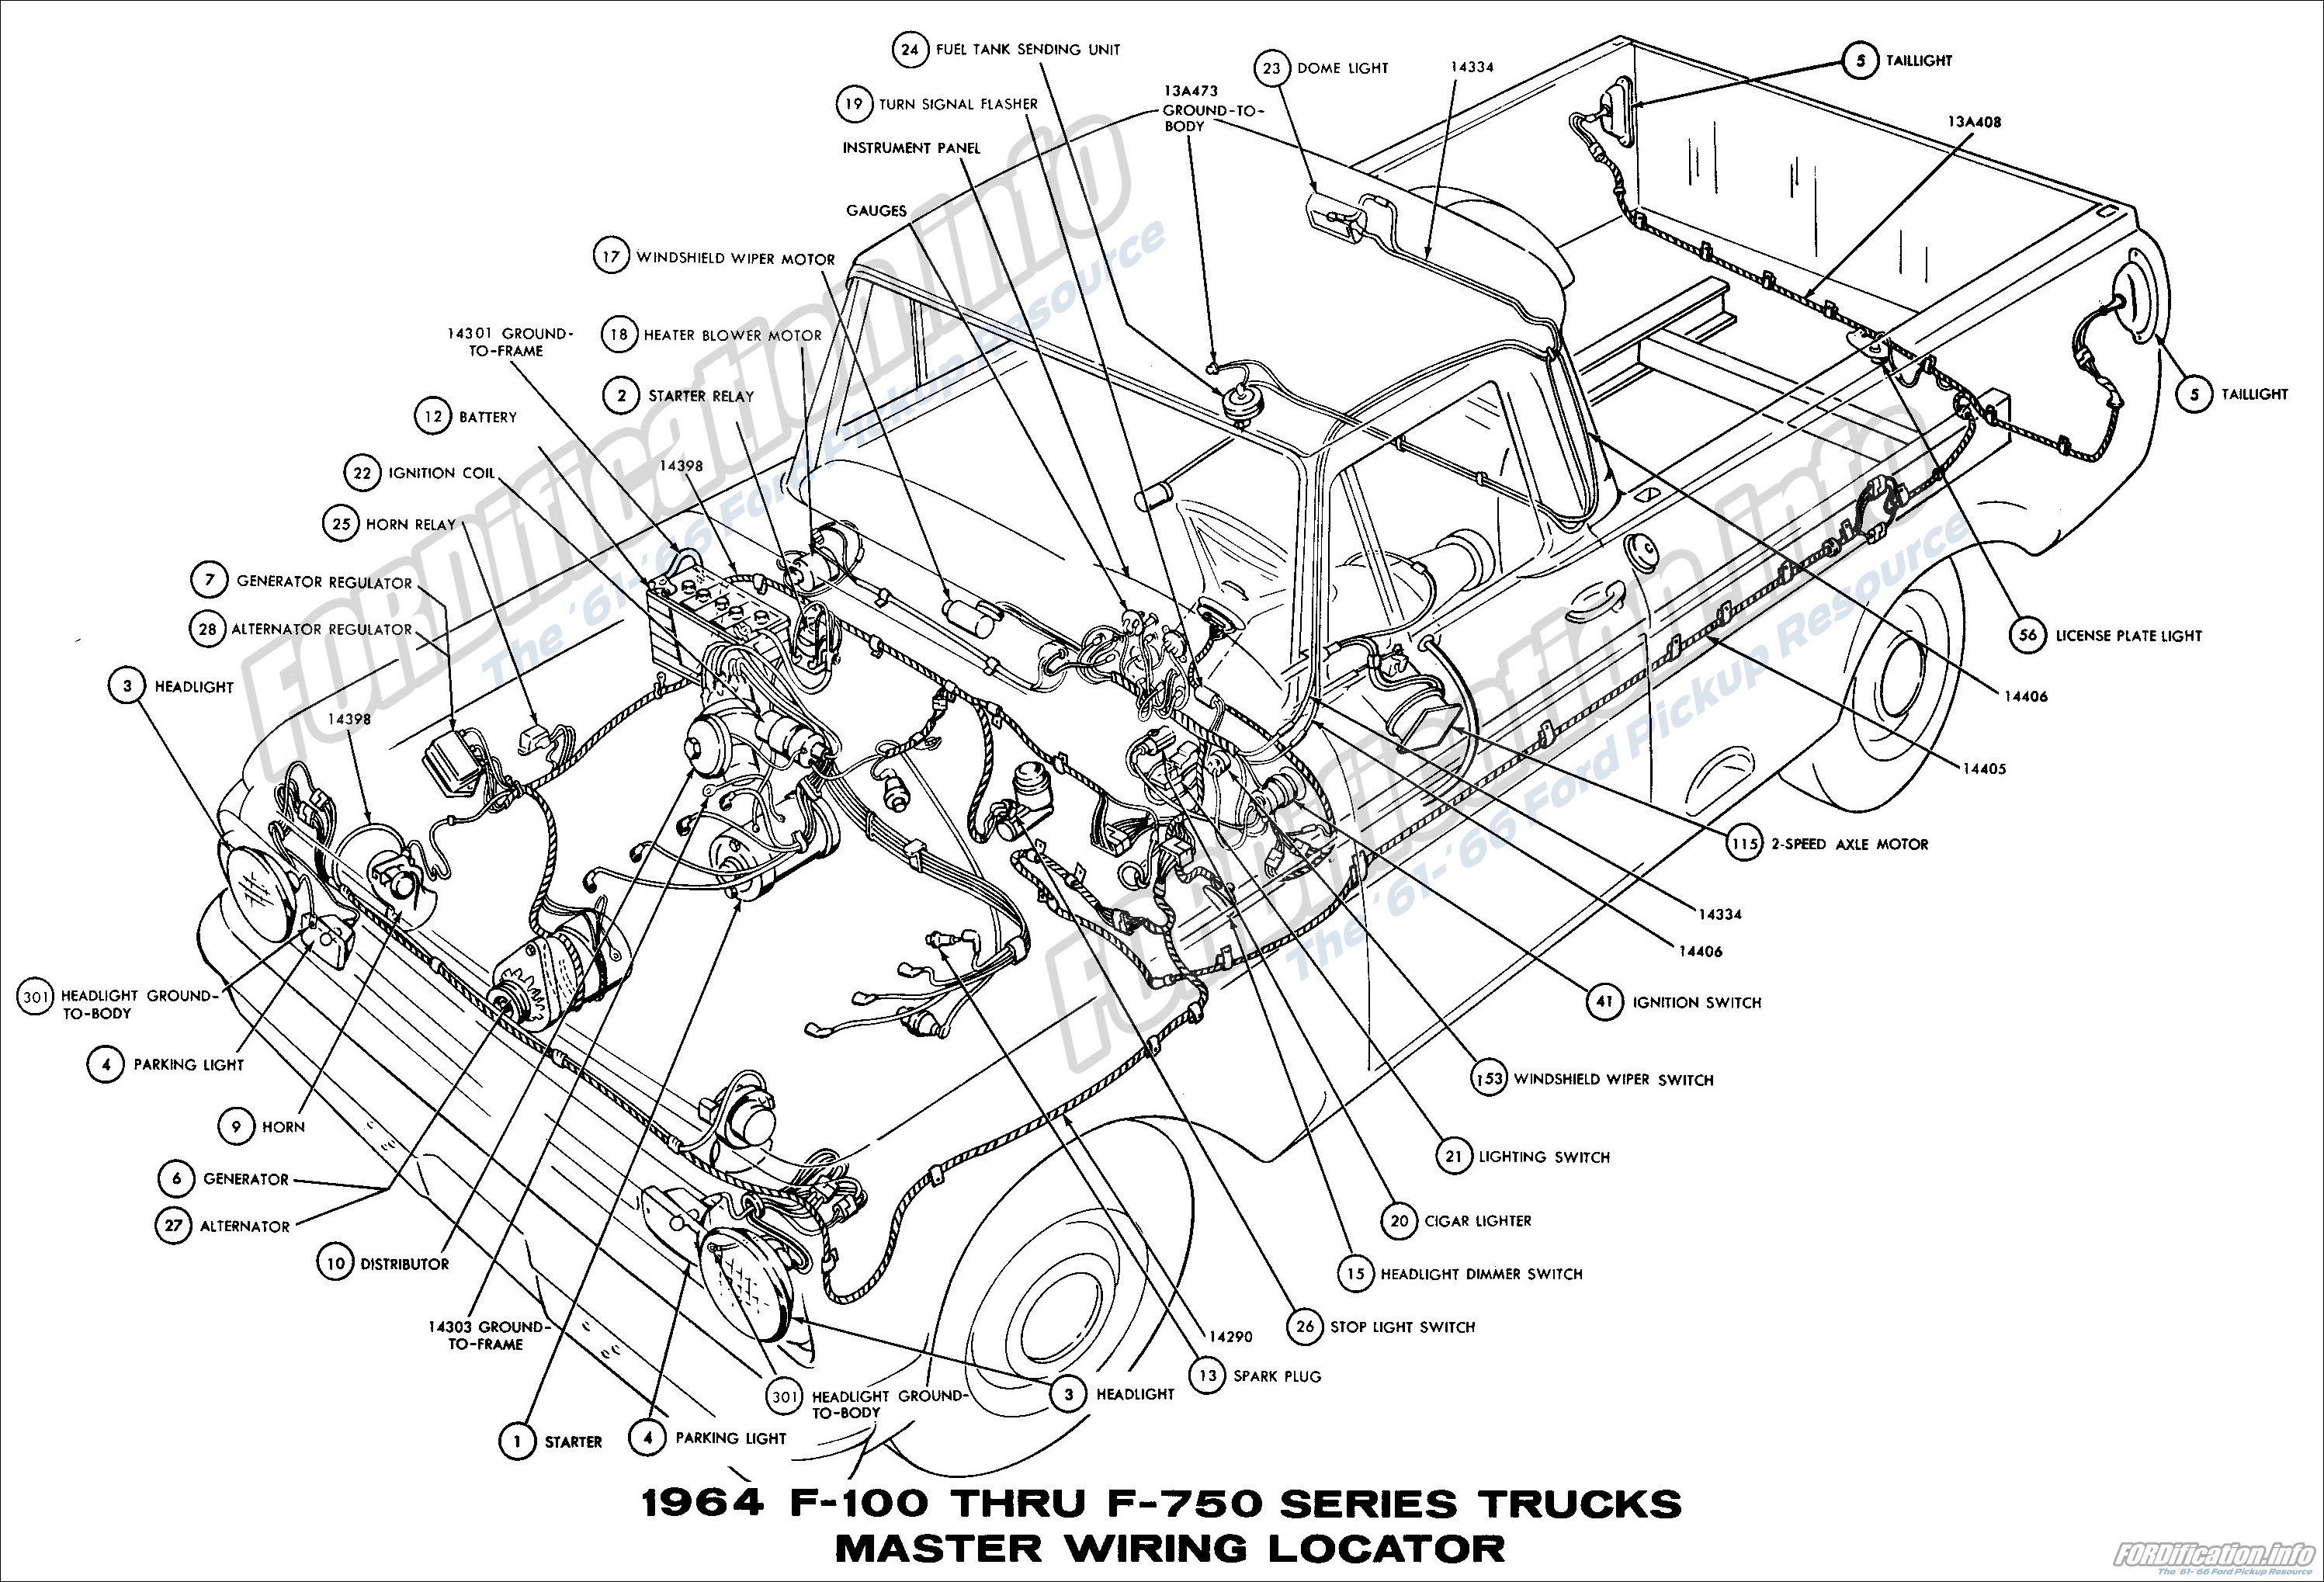 1964 ford truck wiring diagrams fordification info the 61 66 rh fordification info 1969 ford f100 wiring diagram 1976 ford f100 wiring diagram